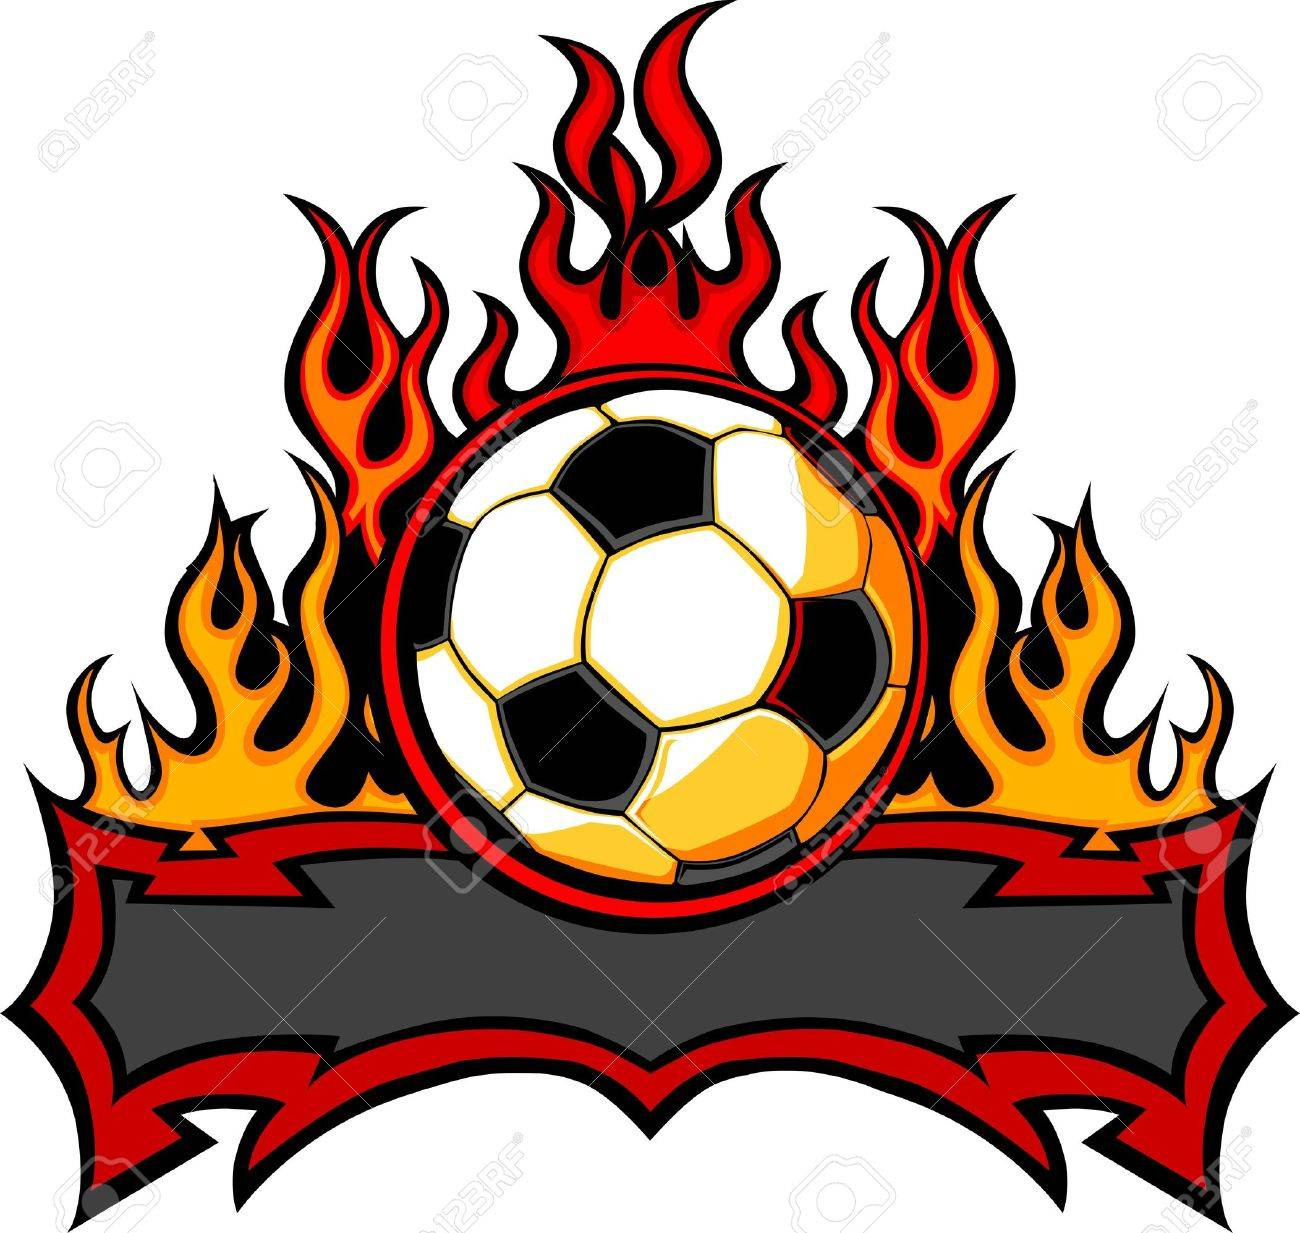 1300x1233 Graphic Soccer Ball Vector Image Template With Flames Royalty Free